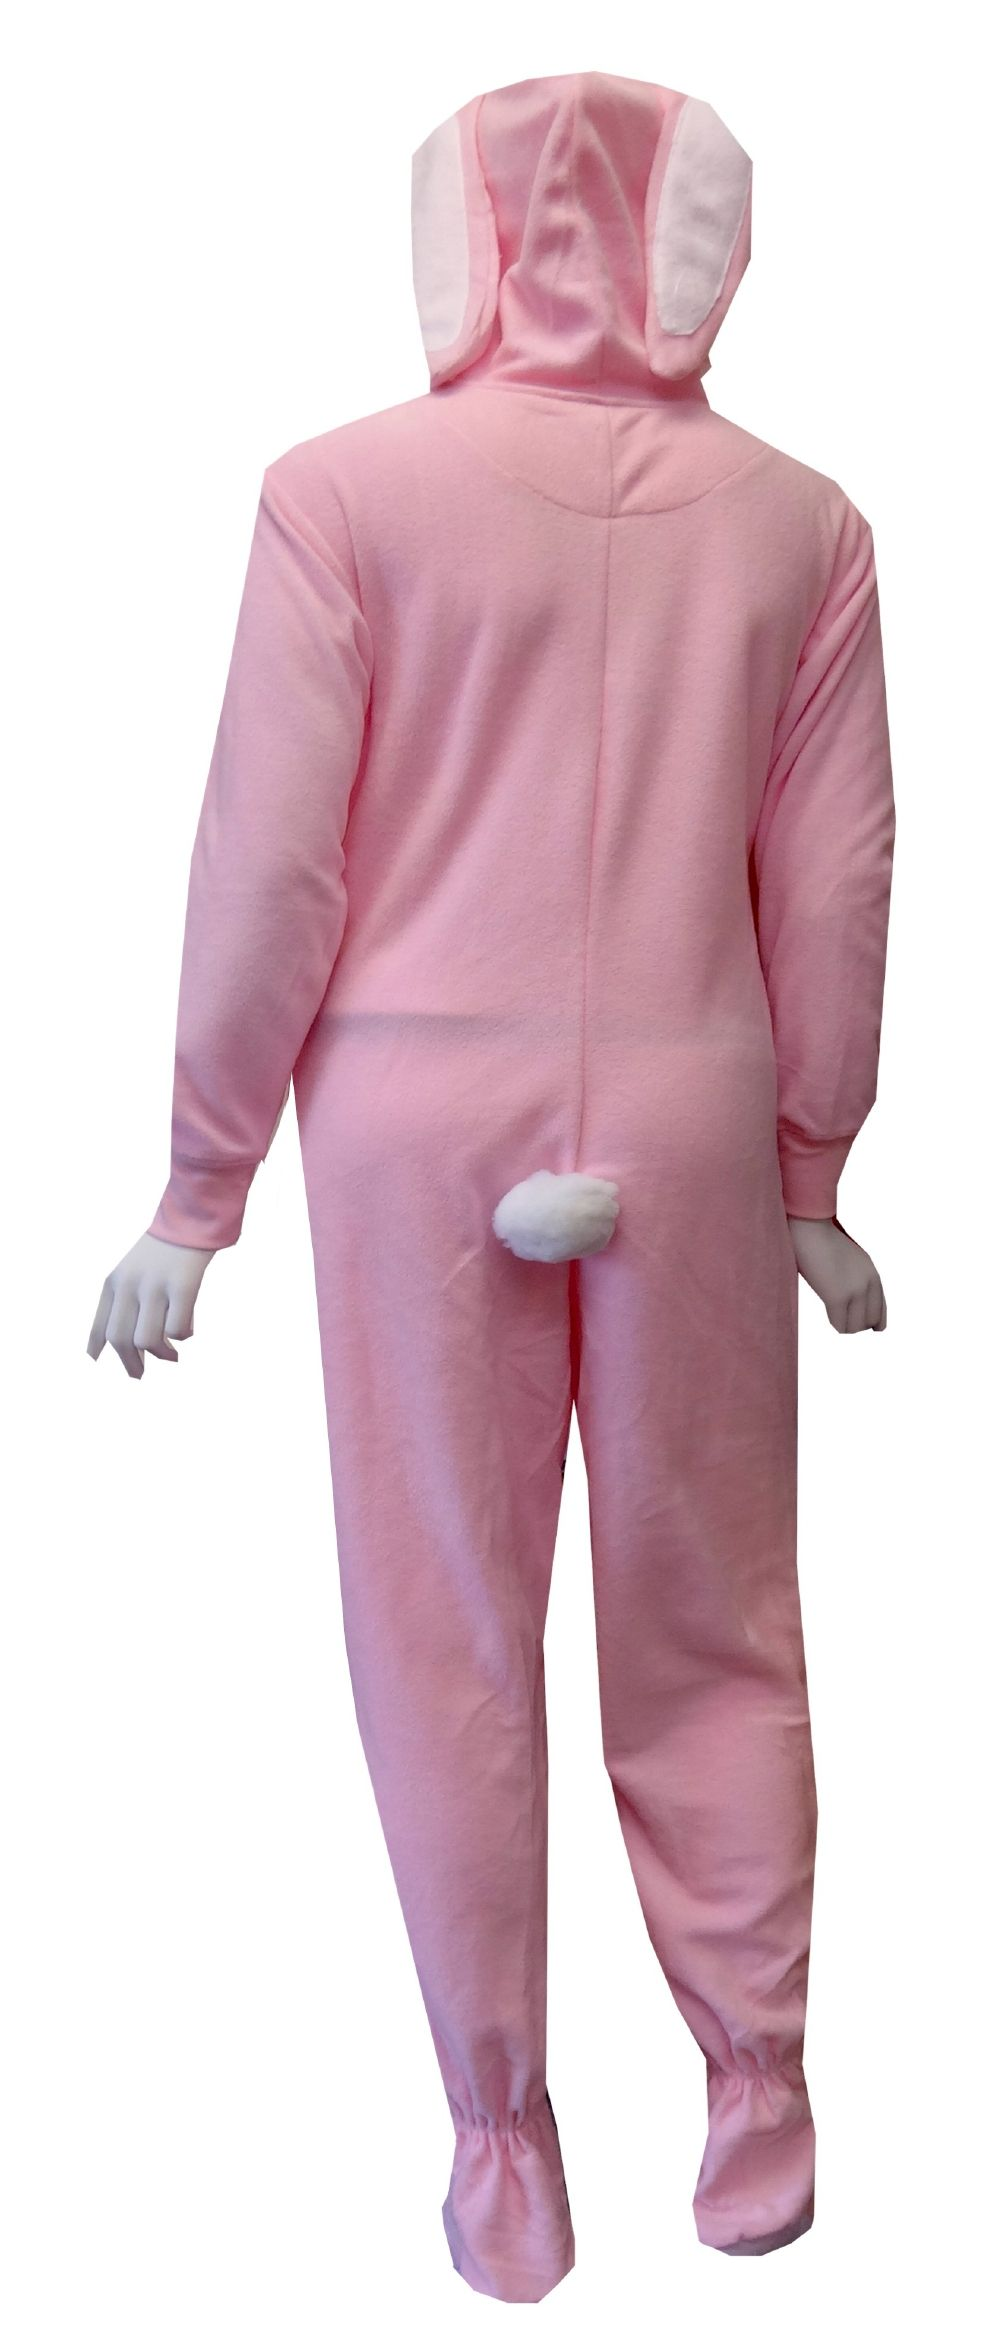 2b7a7516 Pink Bunny Hooded Onesie Footie Pajama Just for the fun of it!! These pink  footed pajamas for women are designed to look just like a bunny, complete  with ...